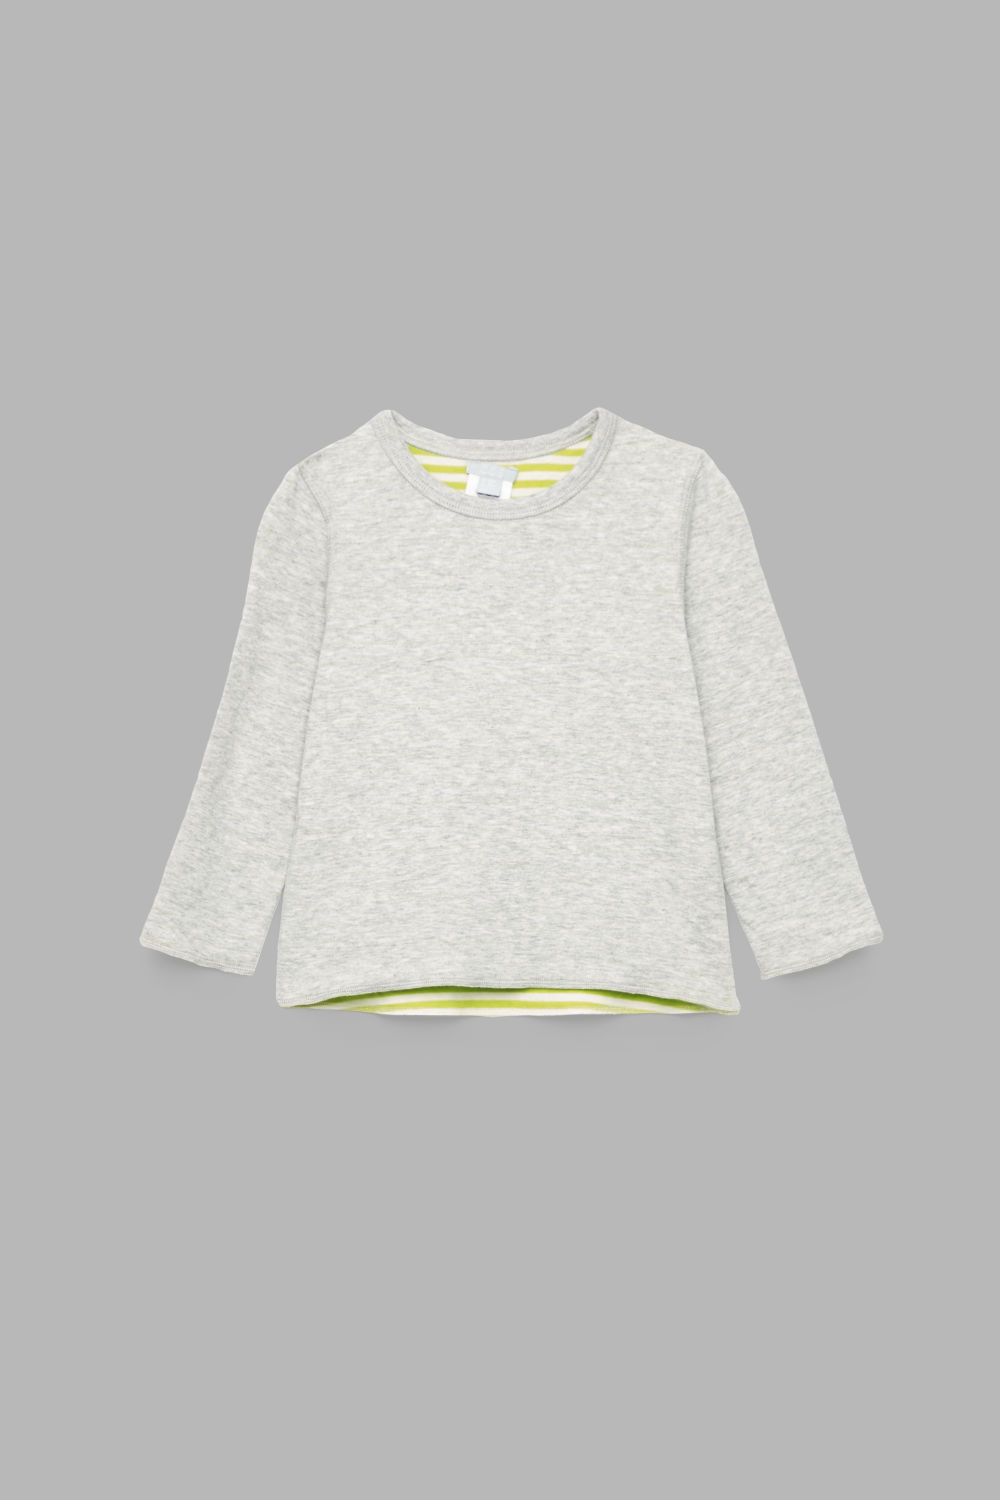 REVERSIBLE ORGANIC-COTTON TOP